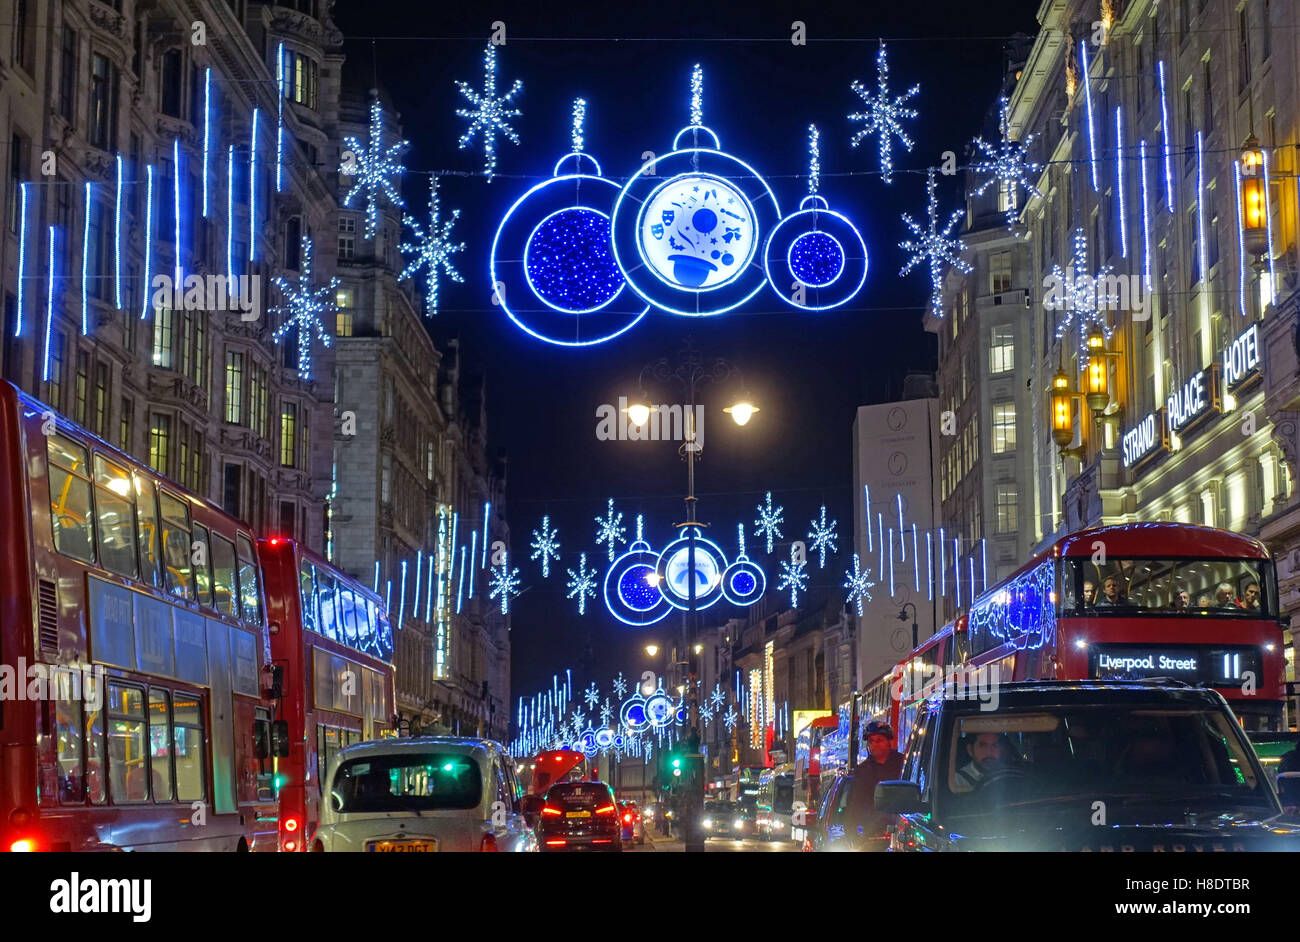 London, UK. 11th Nov, 2016. The Strand in Central London in festive mood on Armistice Day in the evening rush hour. Stock Photo